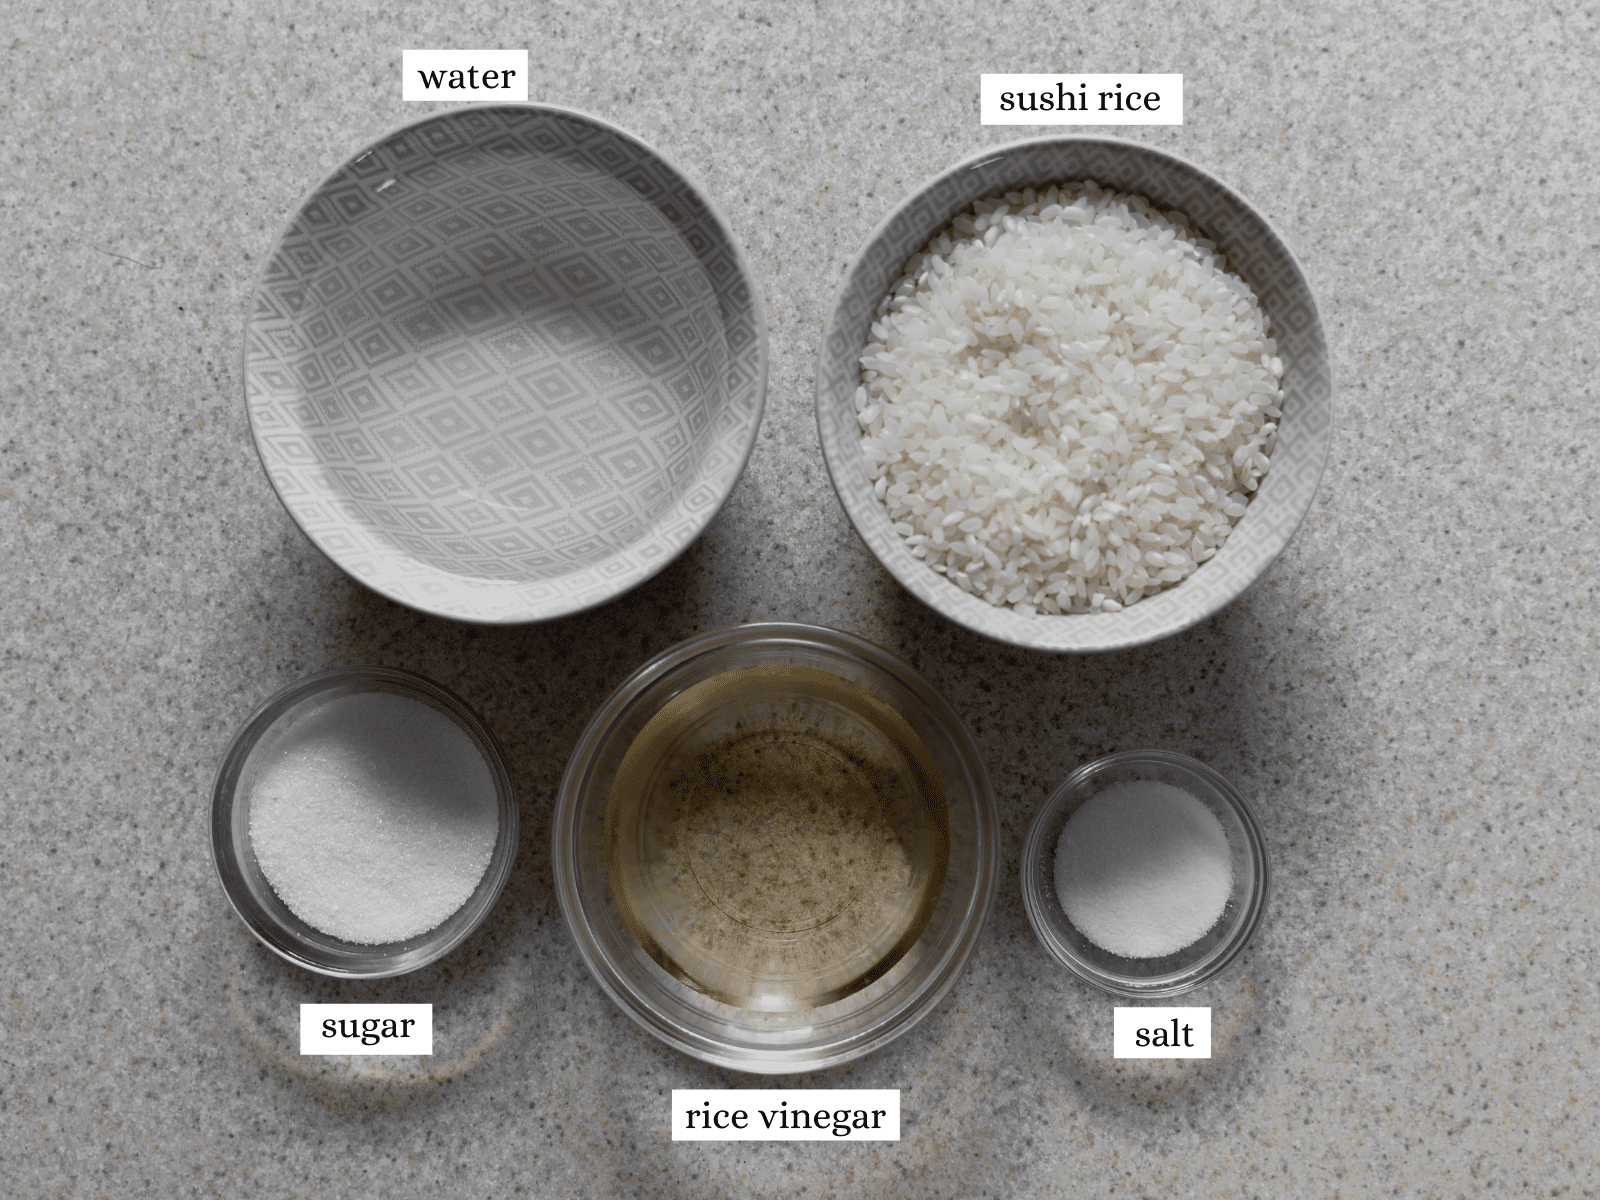 All of the ingredients needed for the recipe - water, sushi rice, sugar, rice vinegar and salt.